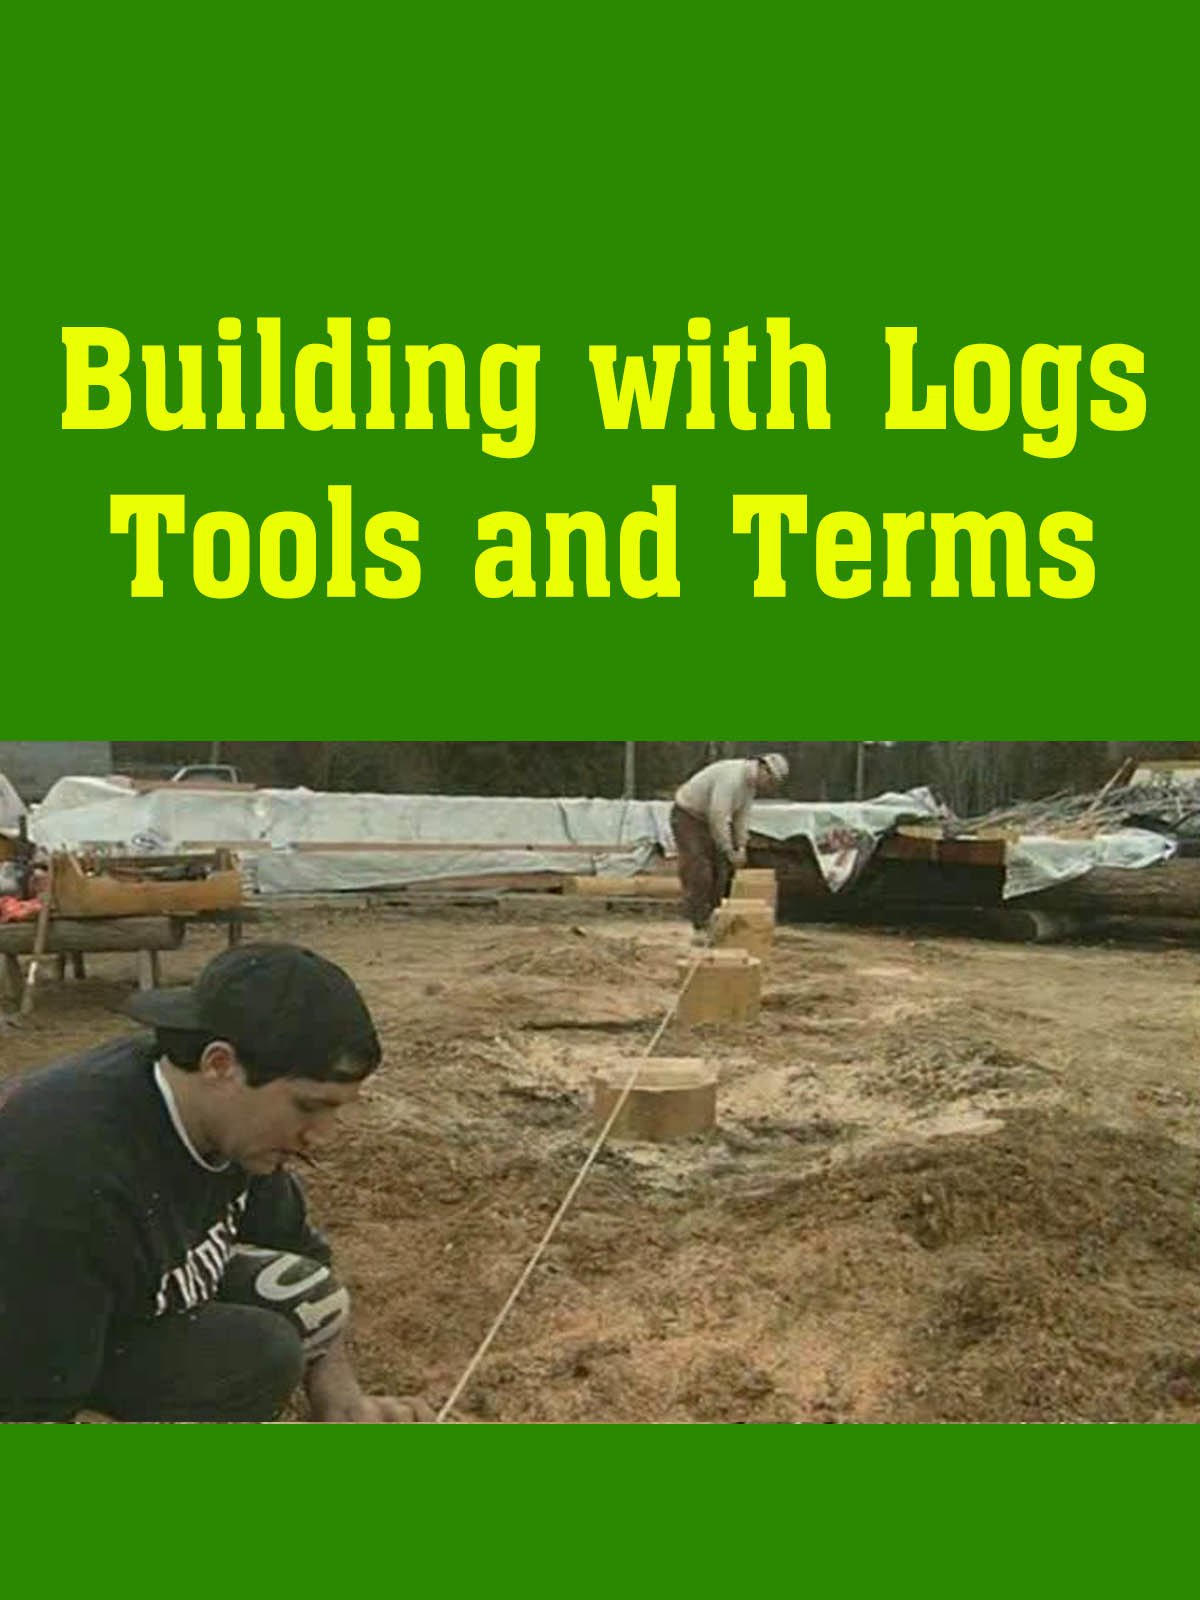 Building with Logs Tools and Terms